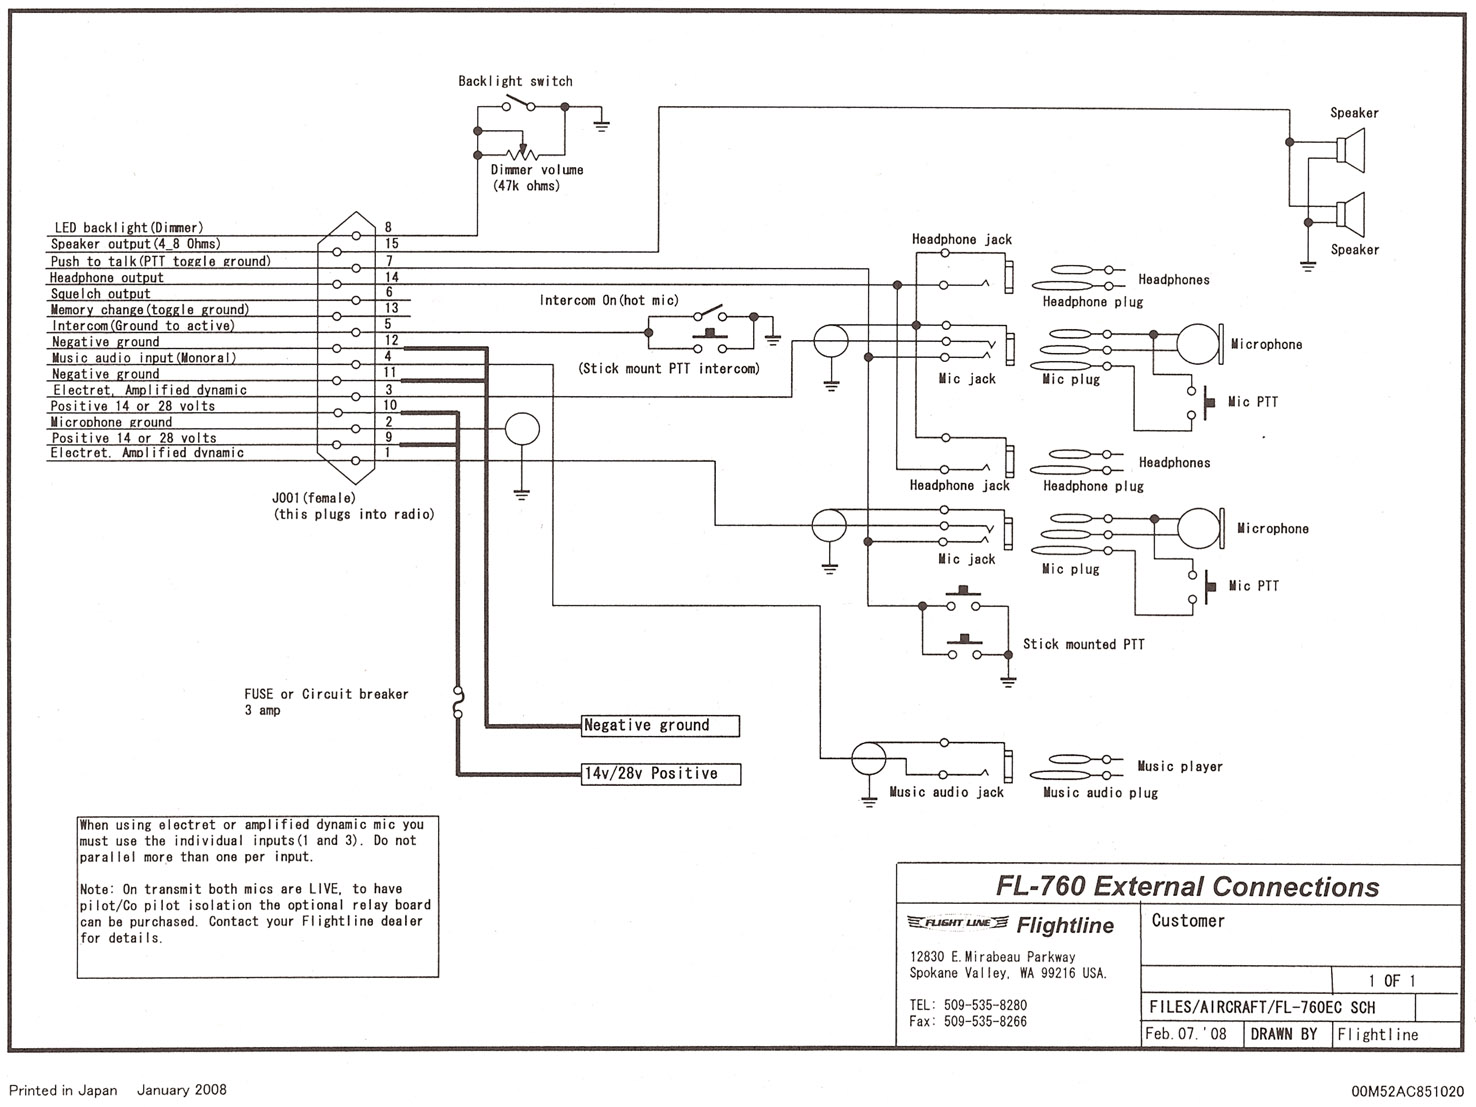 FL 760 Wiring Diagram cumulus soaring, inc flightline spa power 750 wiring diagram at gsmportal.co